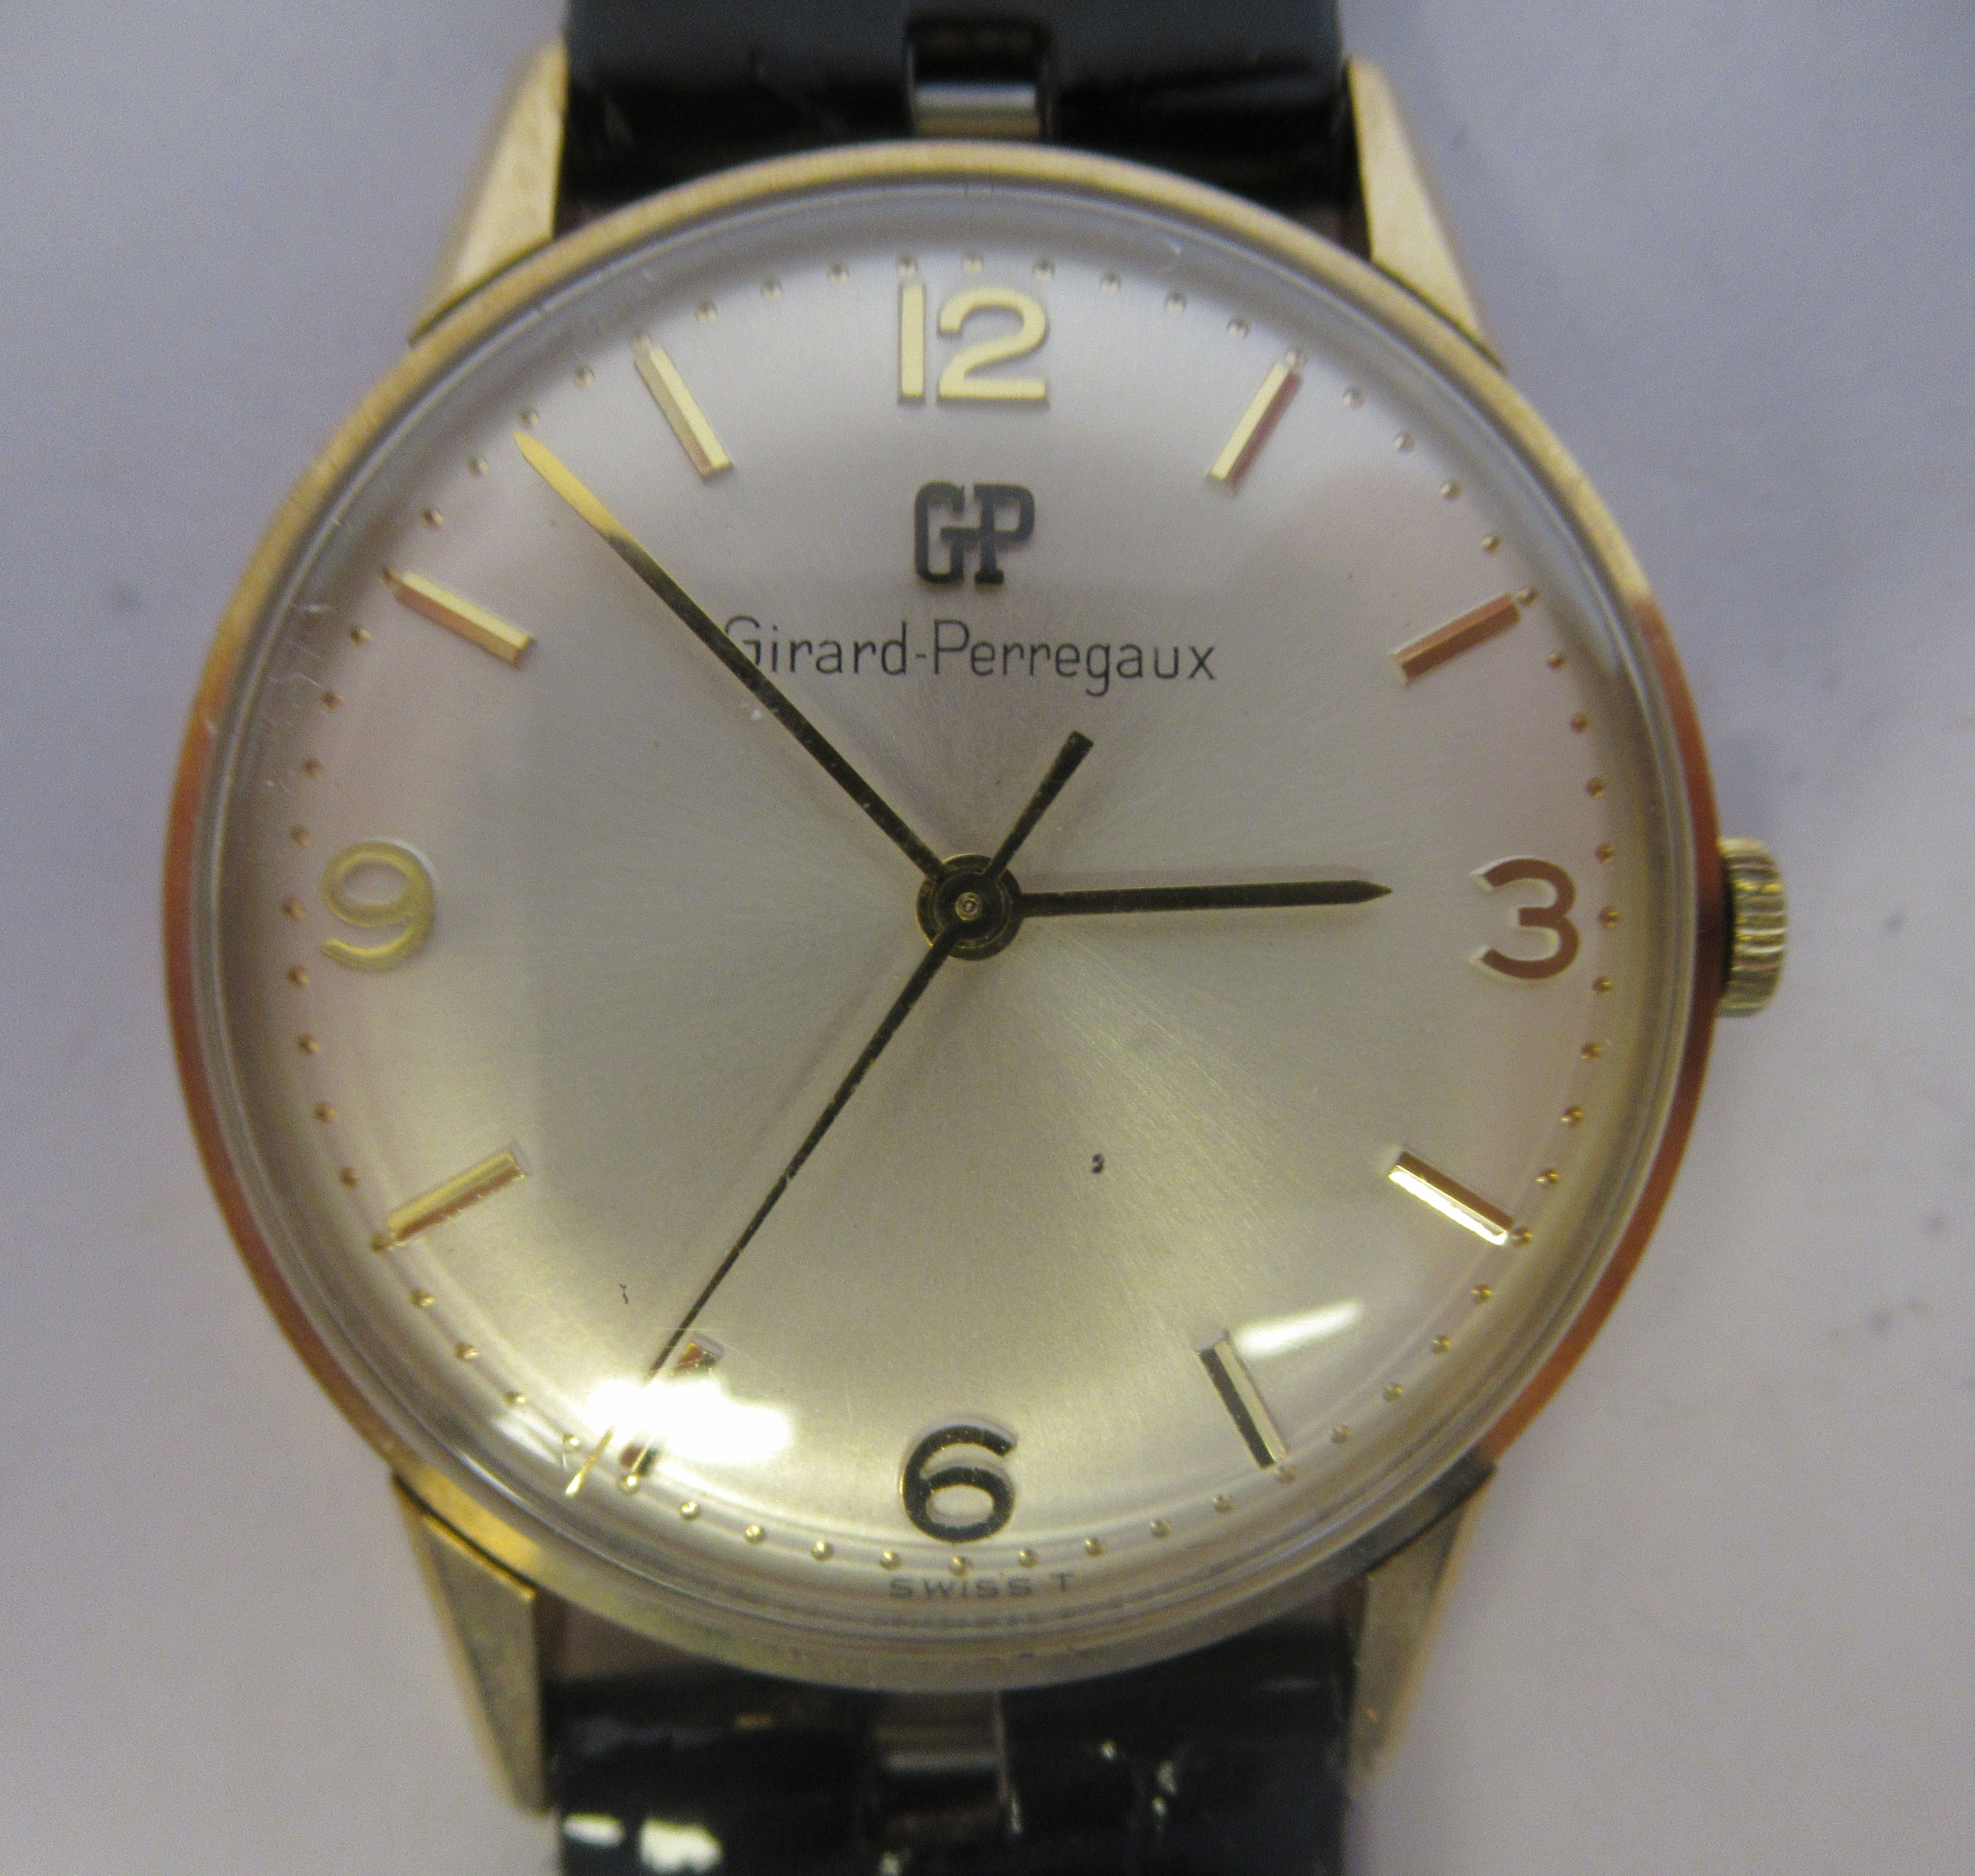 A 1966 Giraird-Perregaux 9ct gold cased wristwatch, the movement with sweeping seconds, faced by